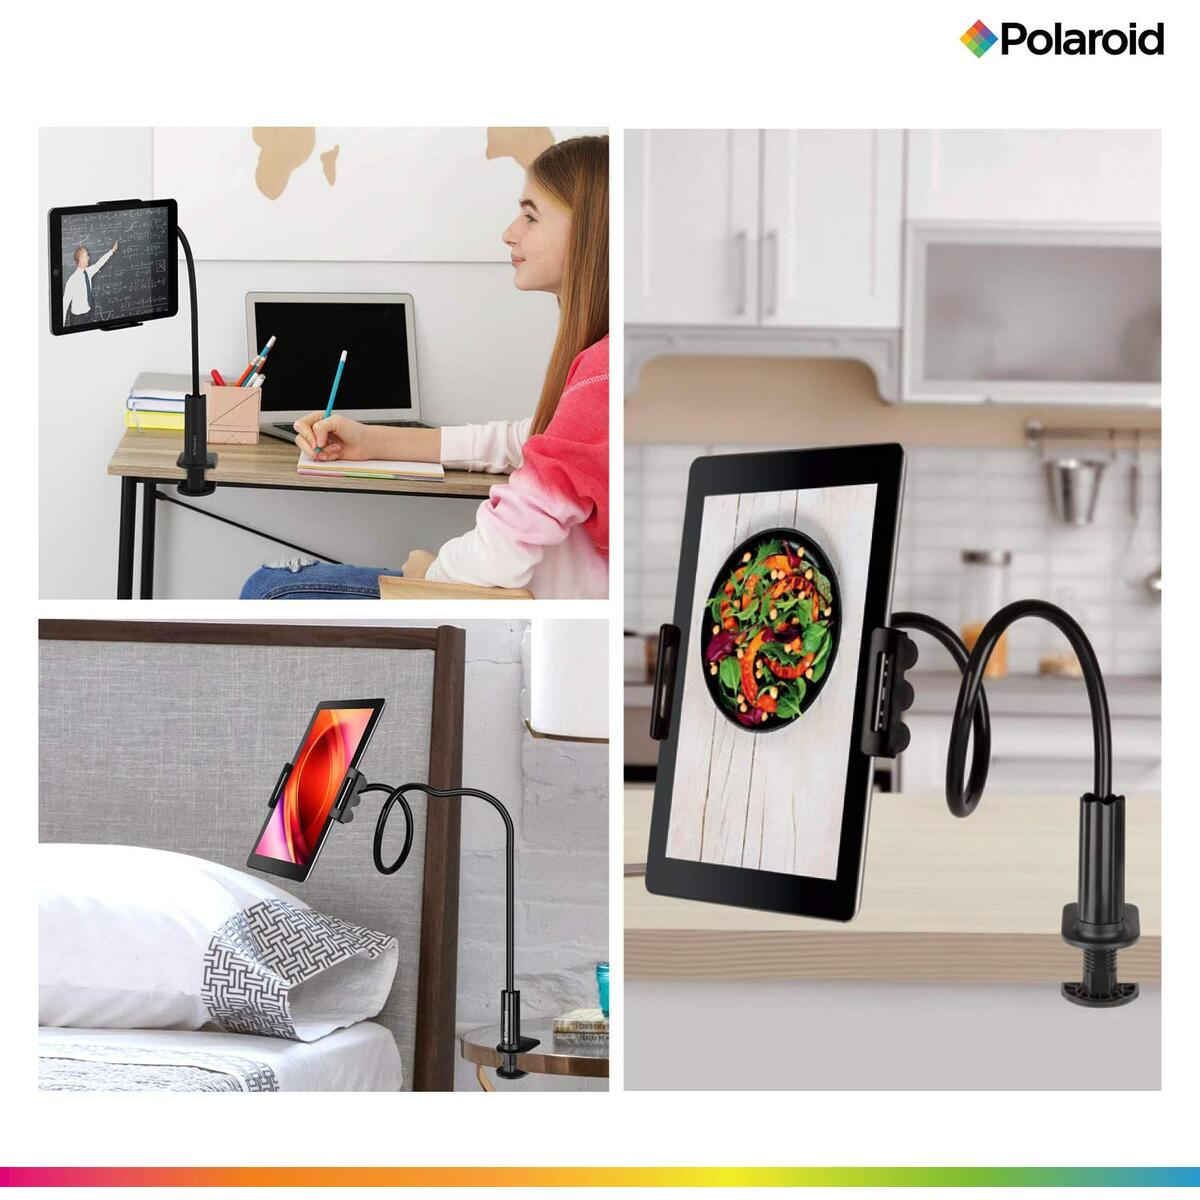 Polaroid Gooseneck Tablet or Phone Holder with Secure Clamp and Table Grip Stand - Fits All Devices Between 4.5